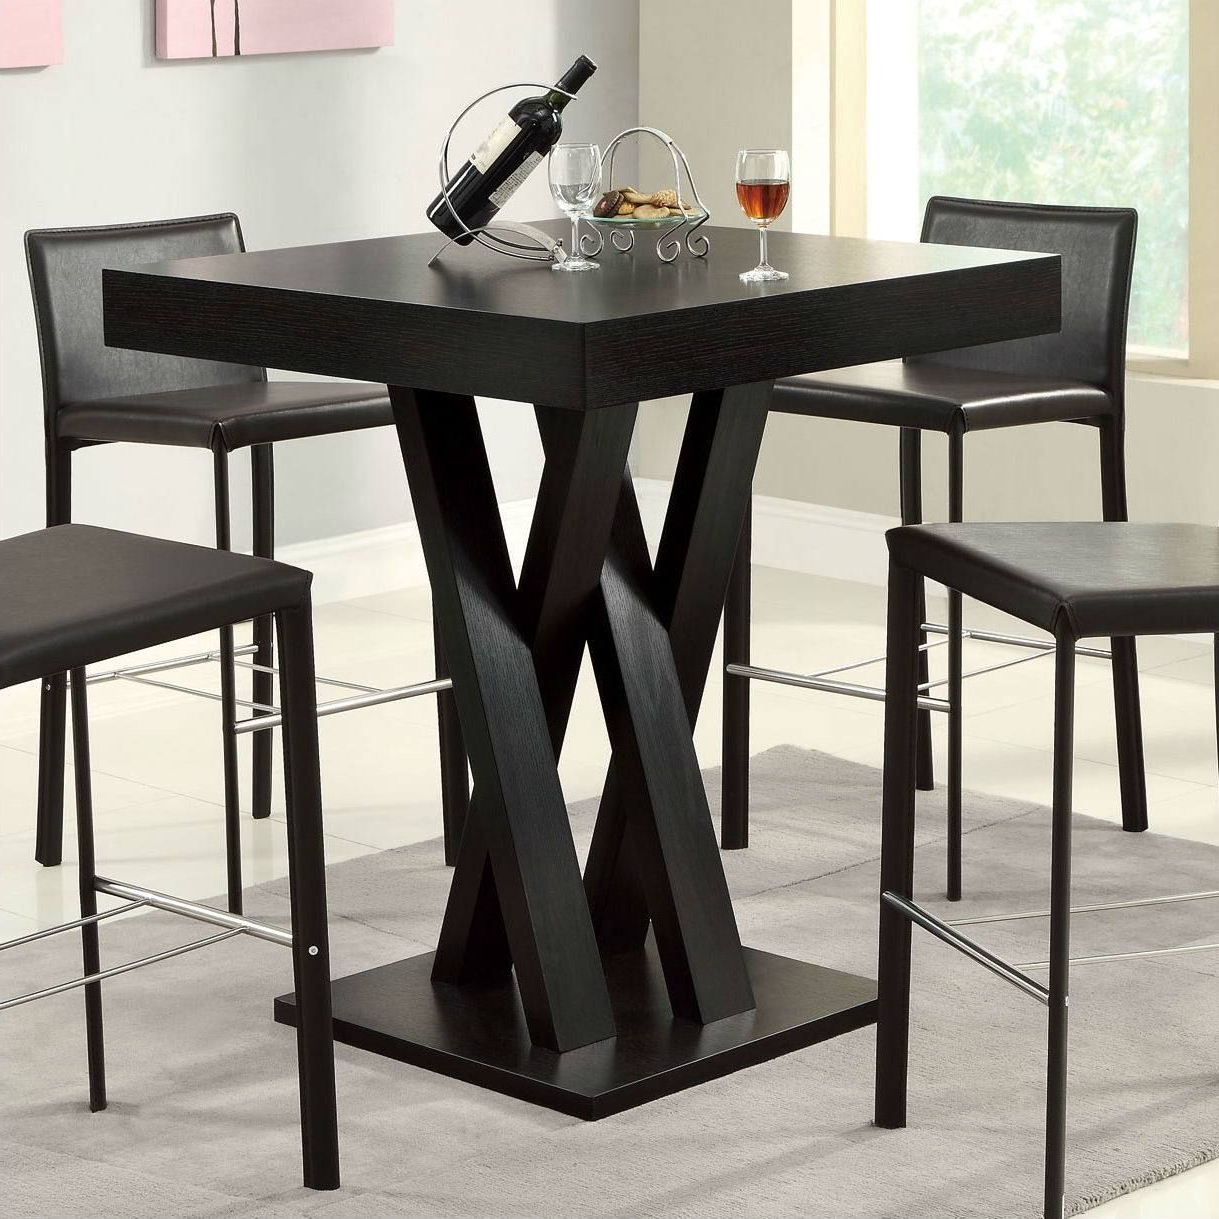 Most Recently Released Modern 40 Inch High Square Dining Table In Dark Cappuccino Finish In Inside 33 Inch Industrial Round Tables (View 12 of 20)